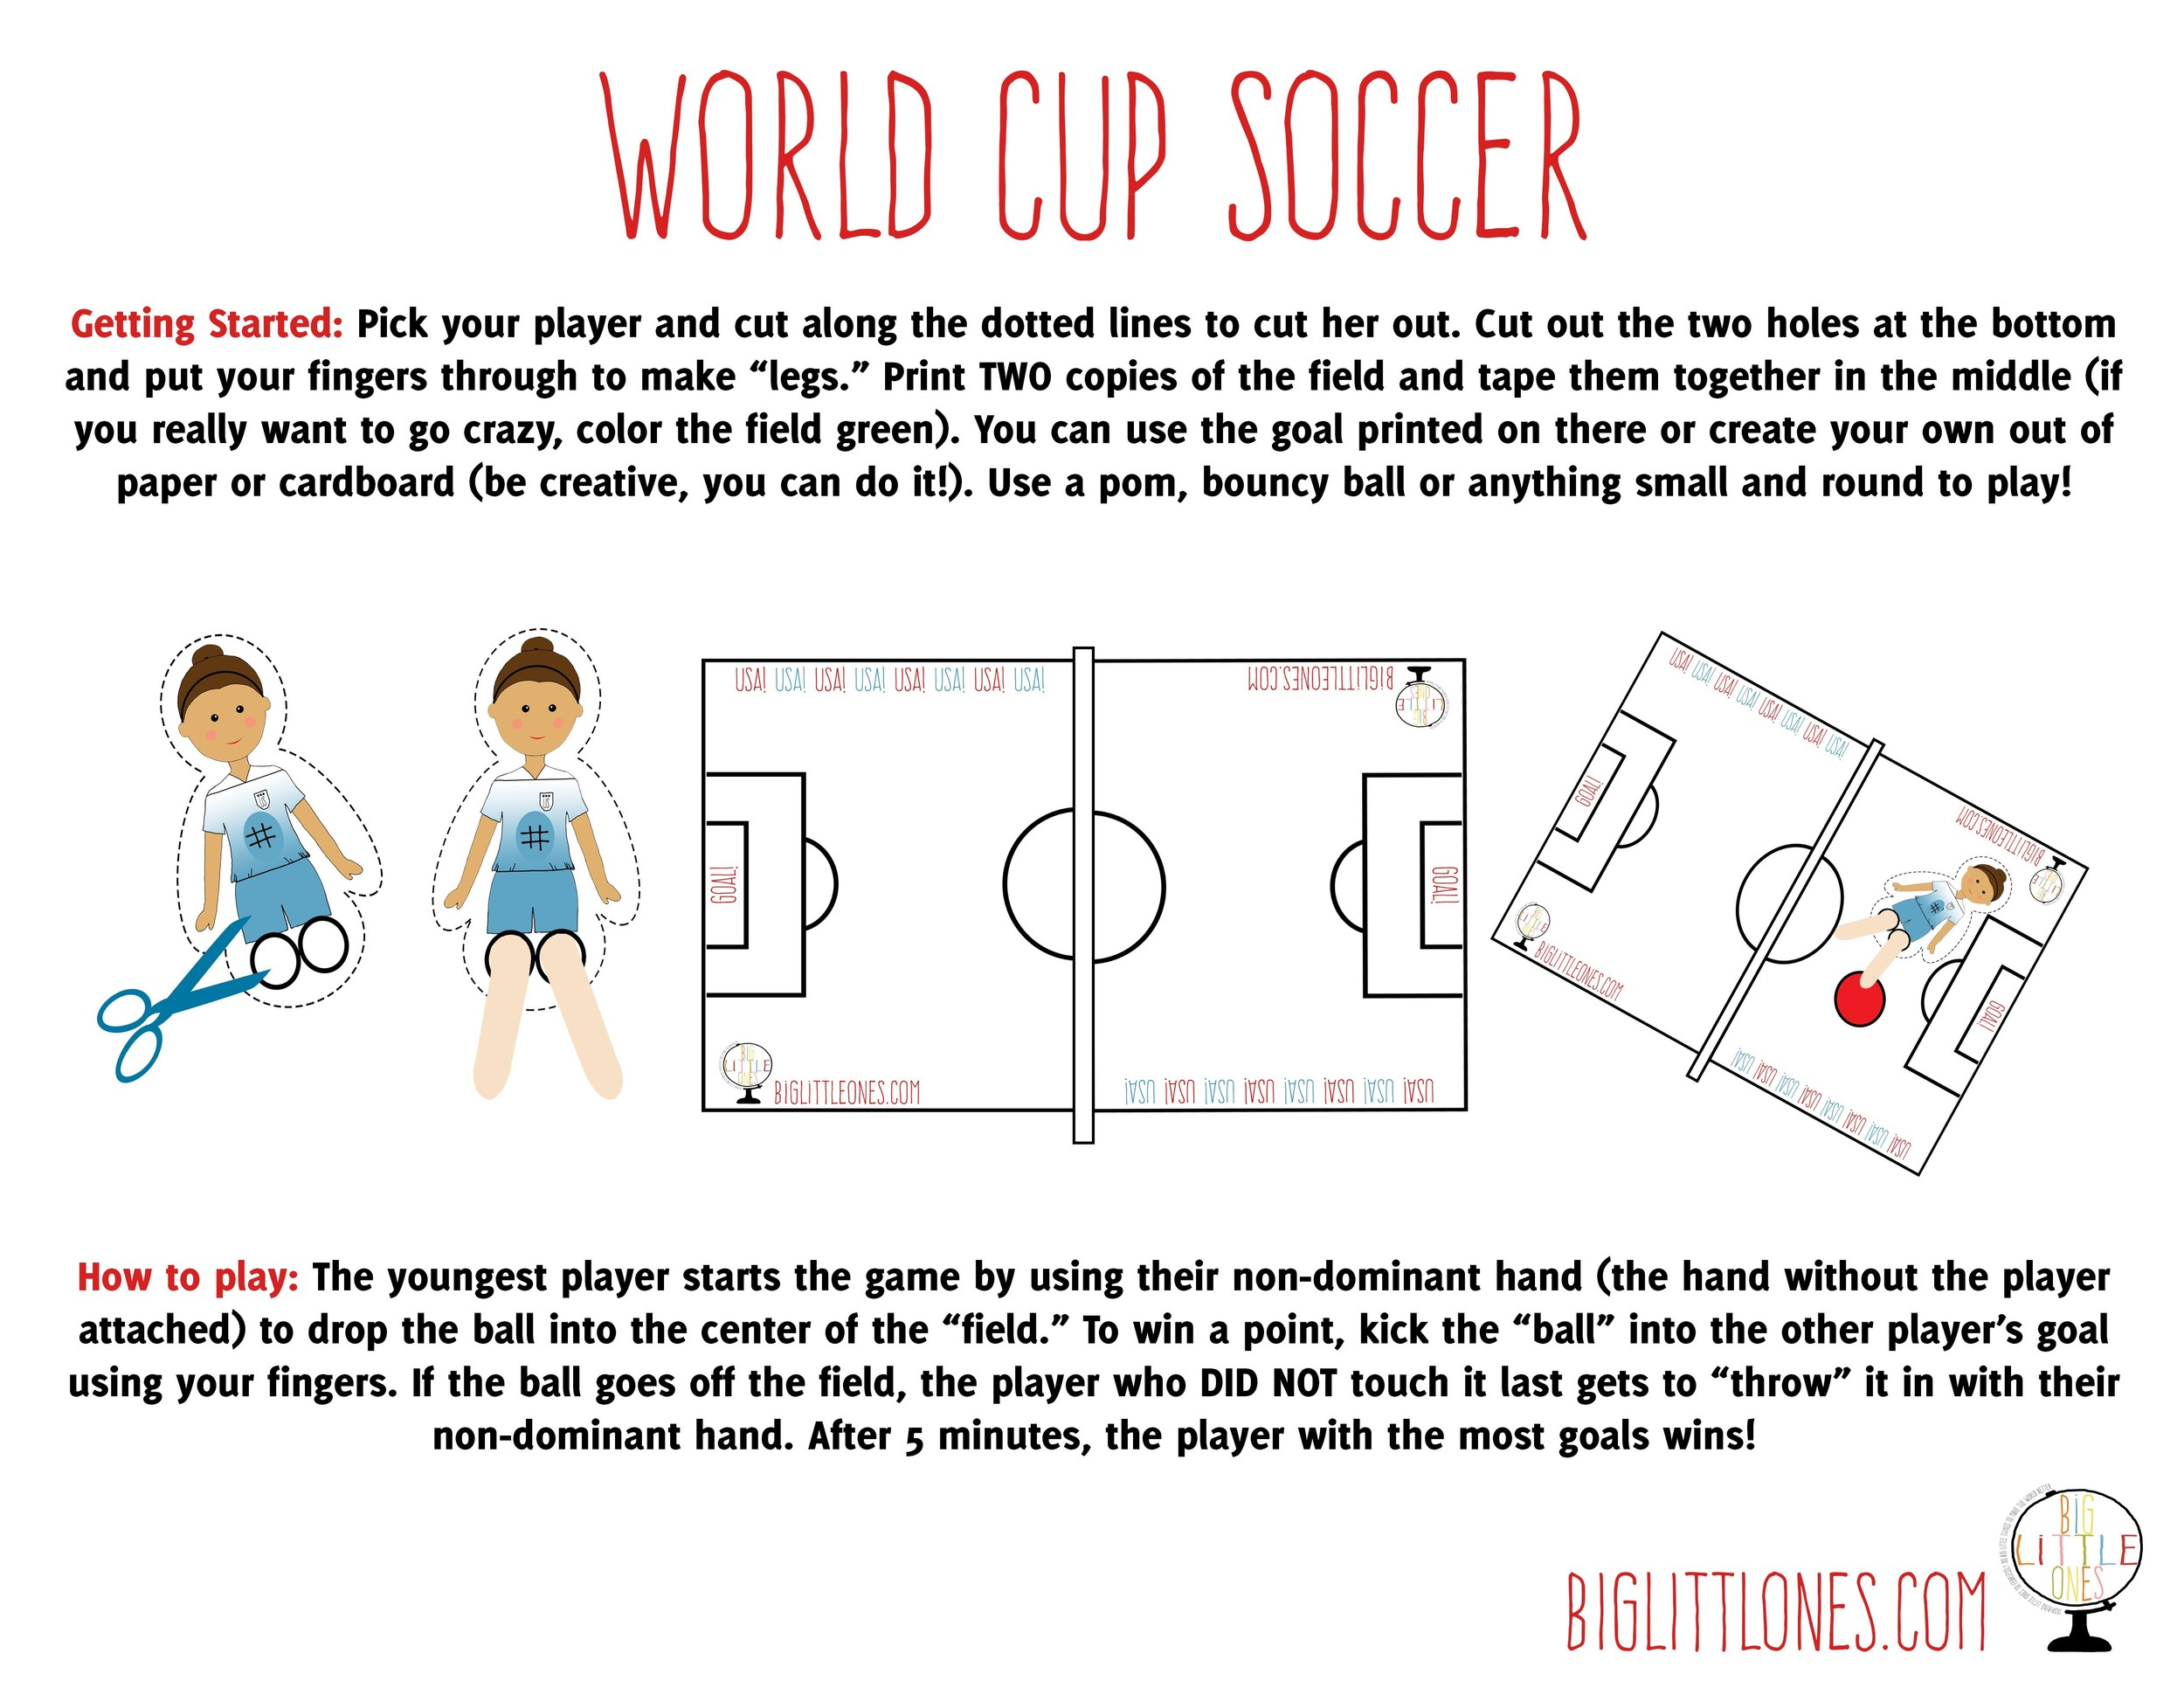 GOAL! Download a FREE World Cup Soccer game to play with your future soccer star!